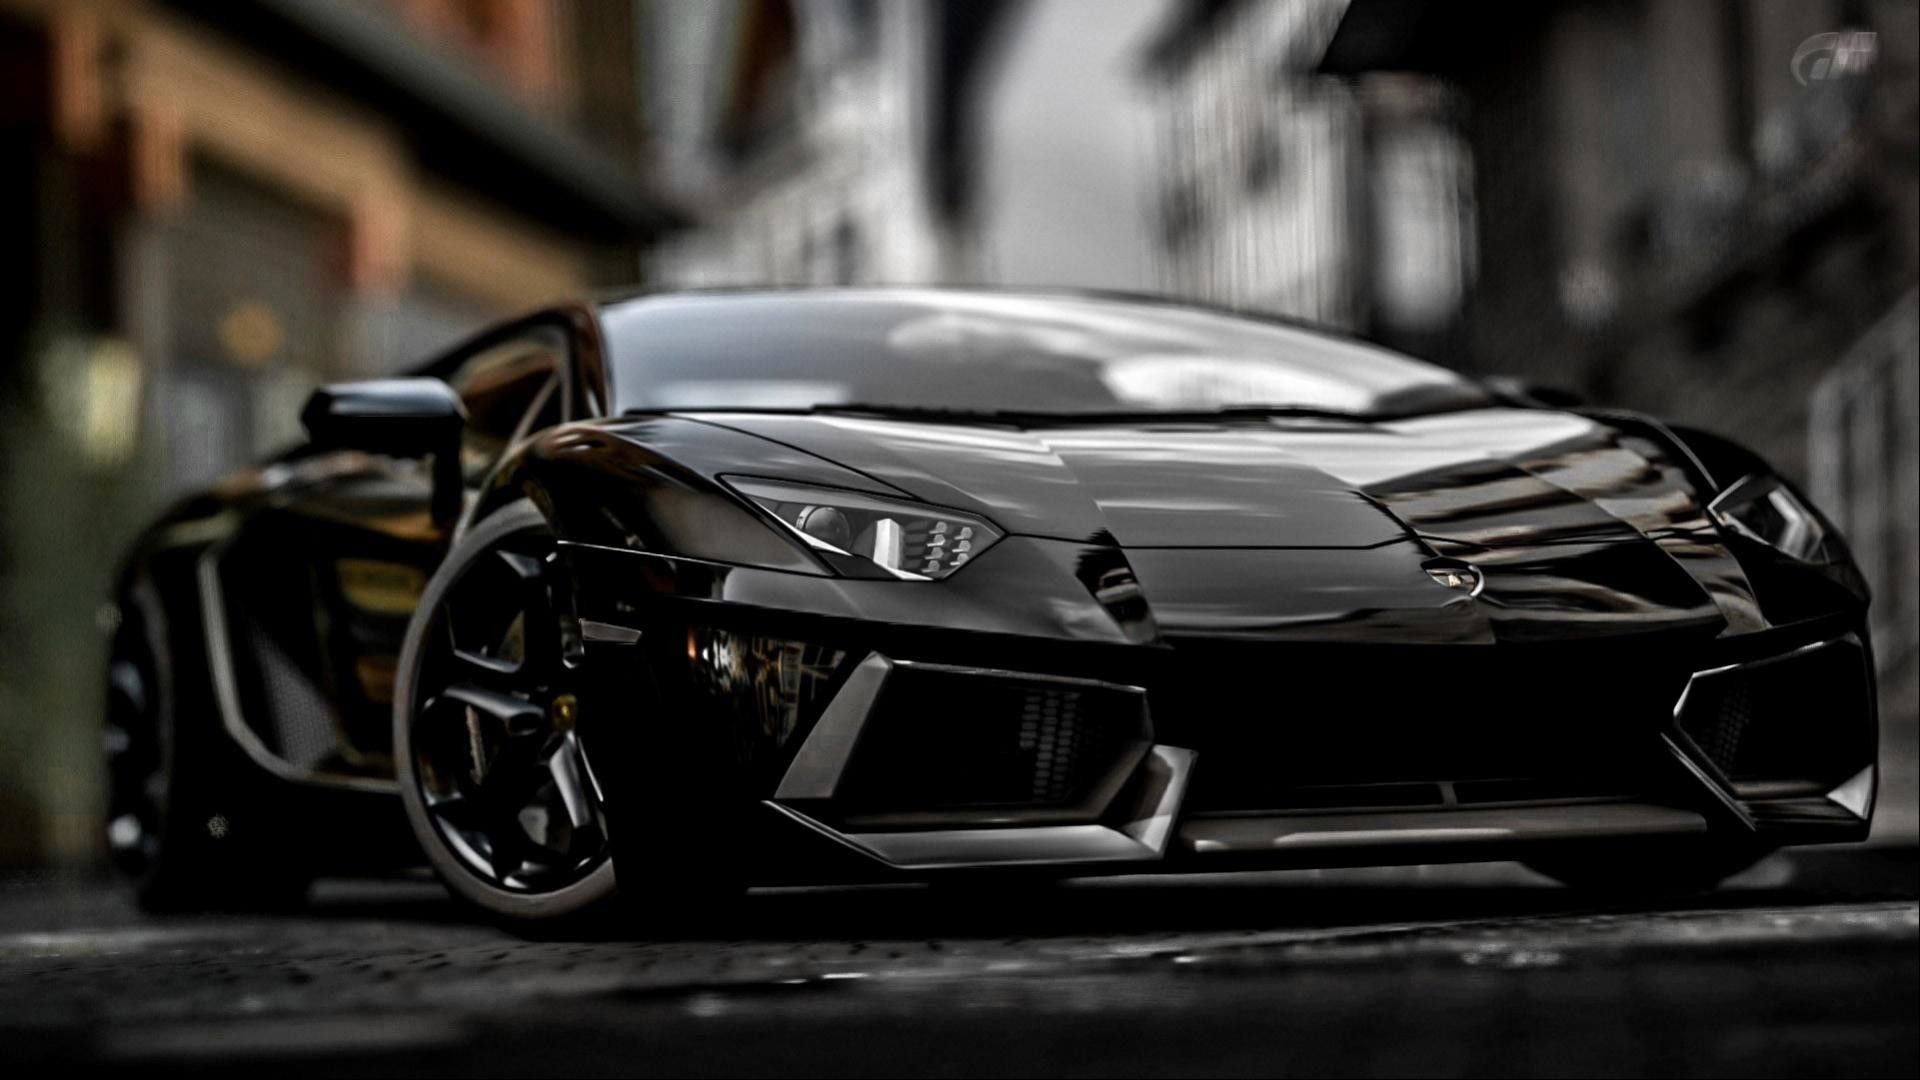 The best full hd 1920x1080 1080p wallpapers free download link download full album: New Car Wallpapers Top Free New Car Backgrounds Wallpaperaccess